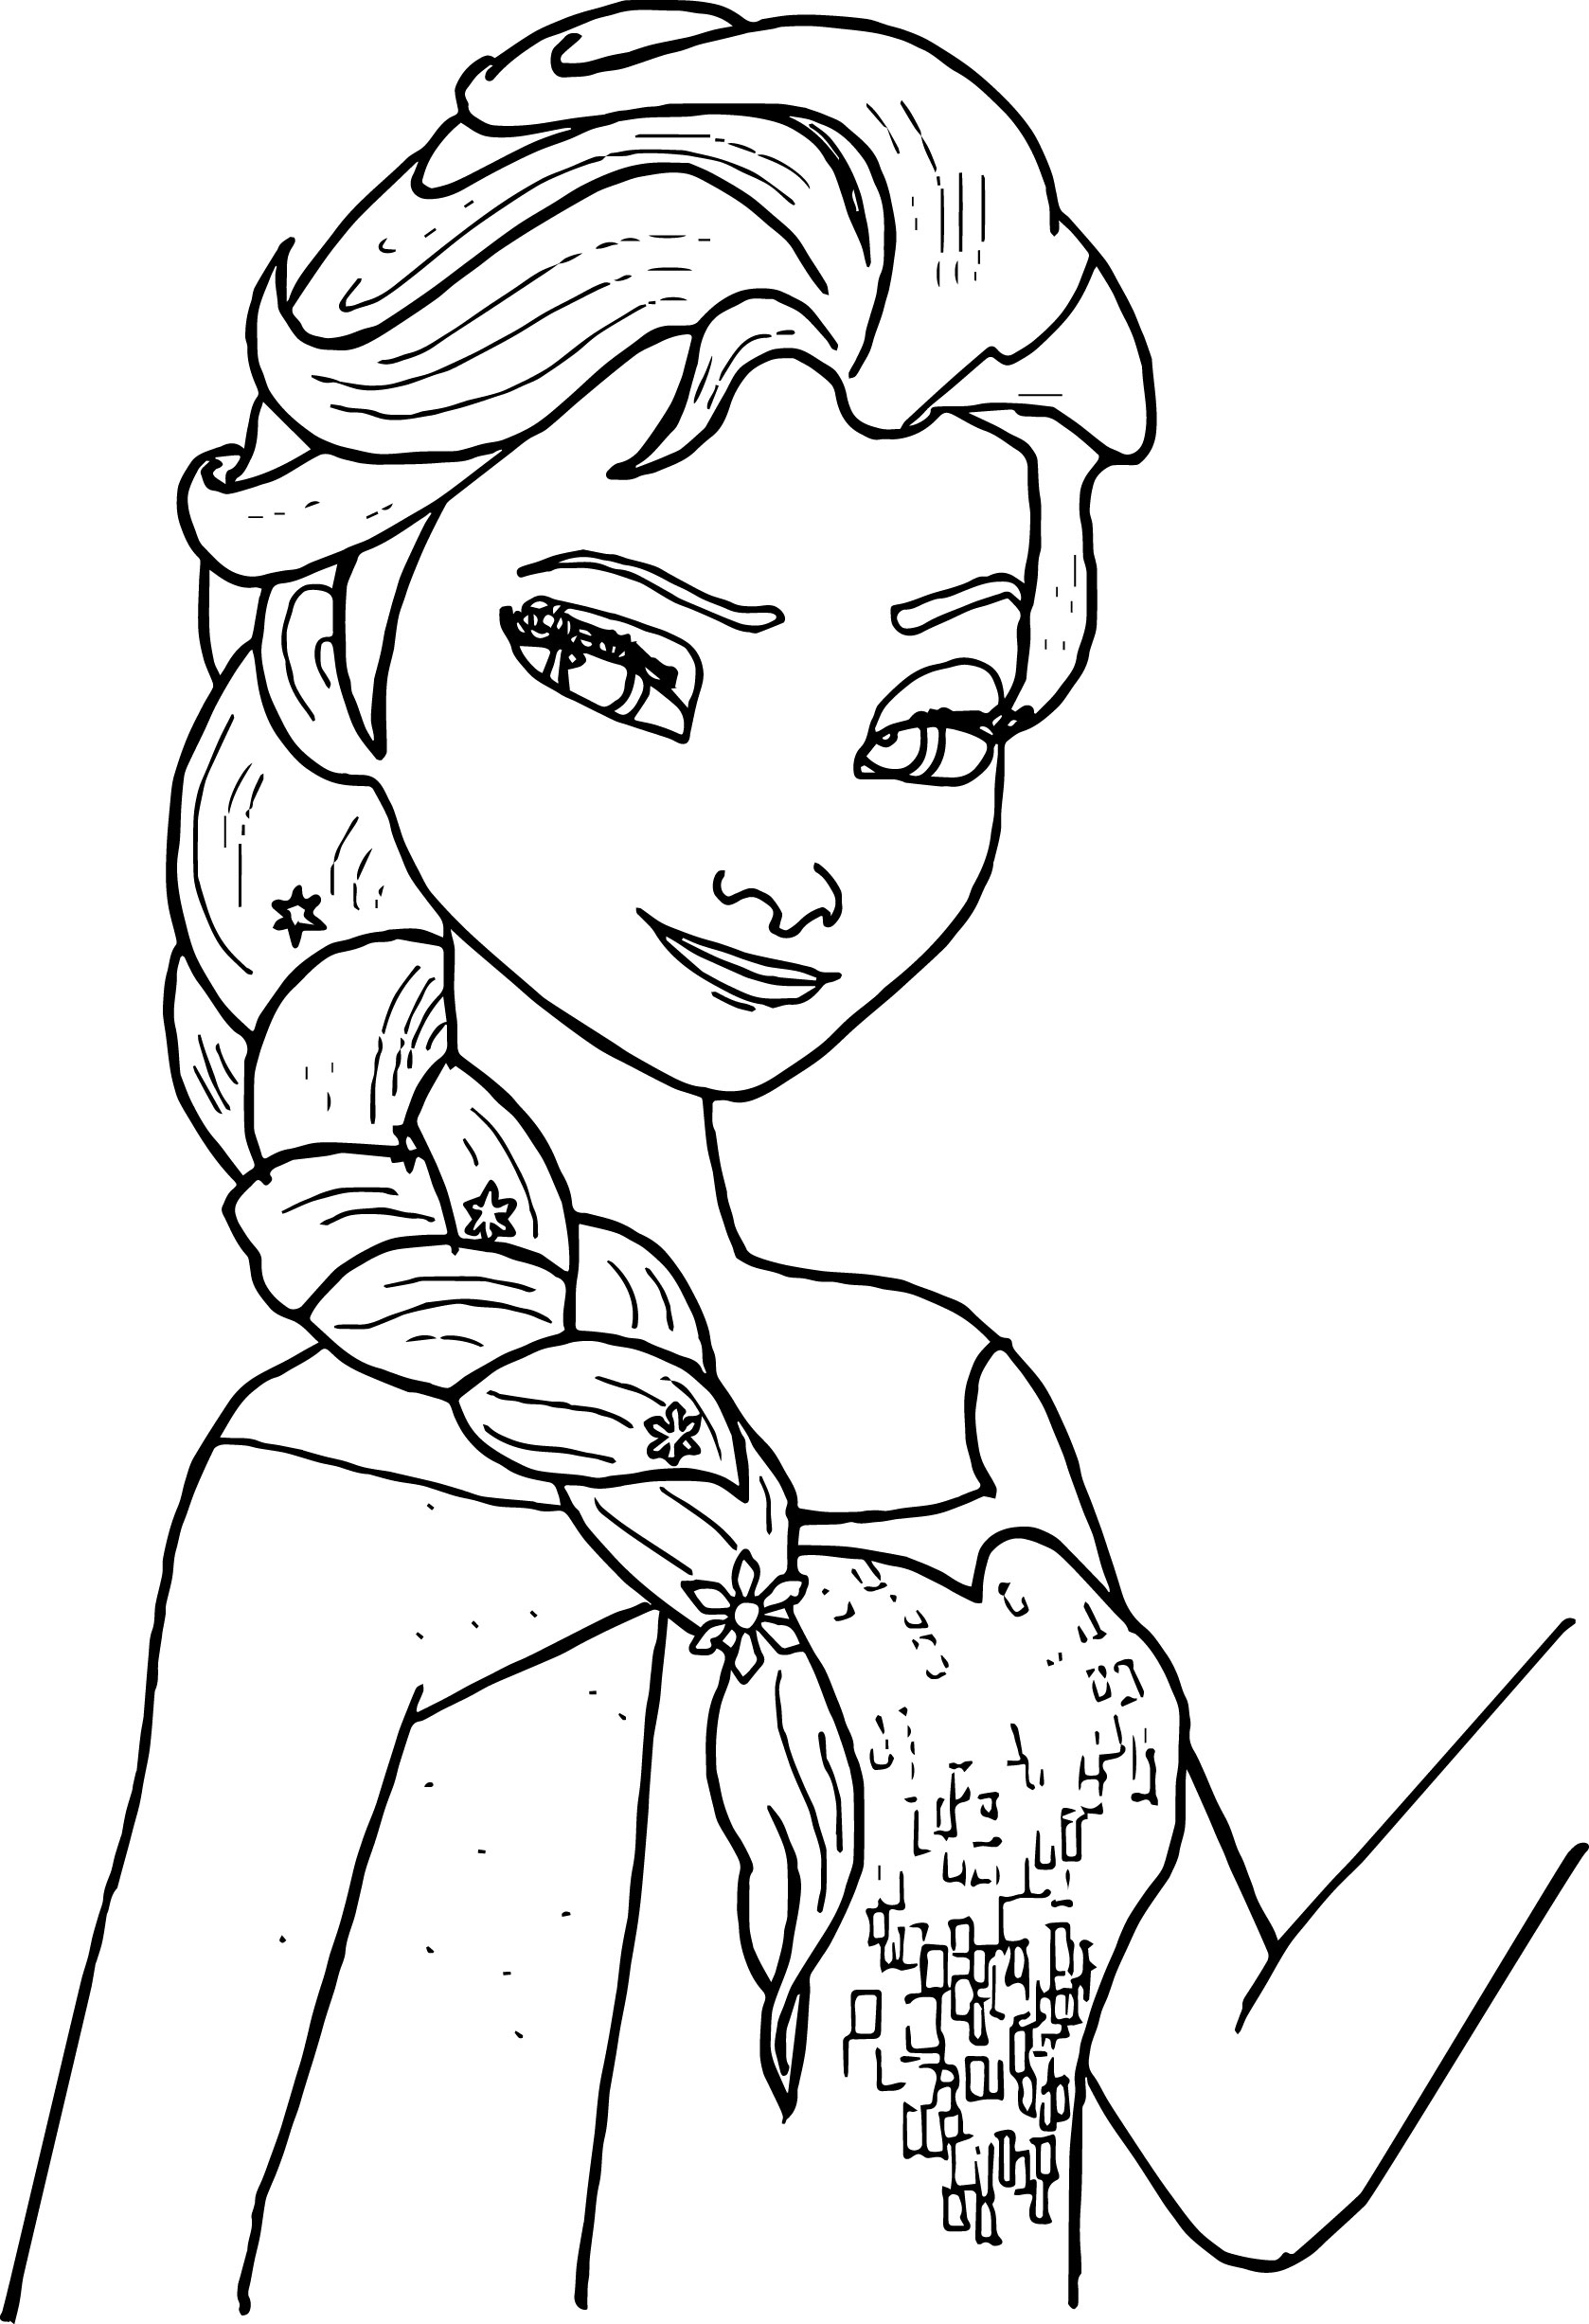 Free Printable Elsa Coloring Pages For Kids Best Childrens Printable Coloring Pages